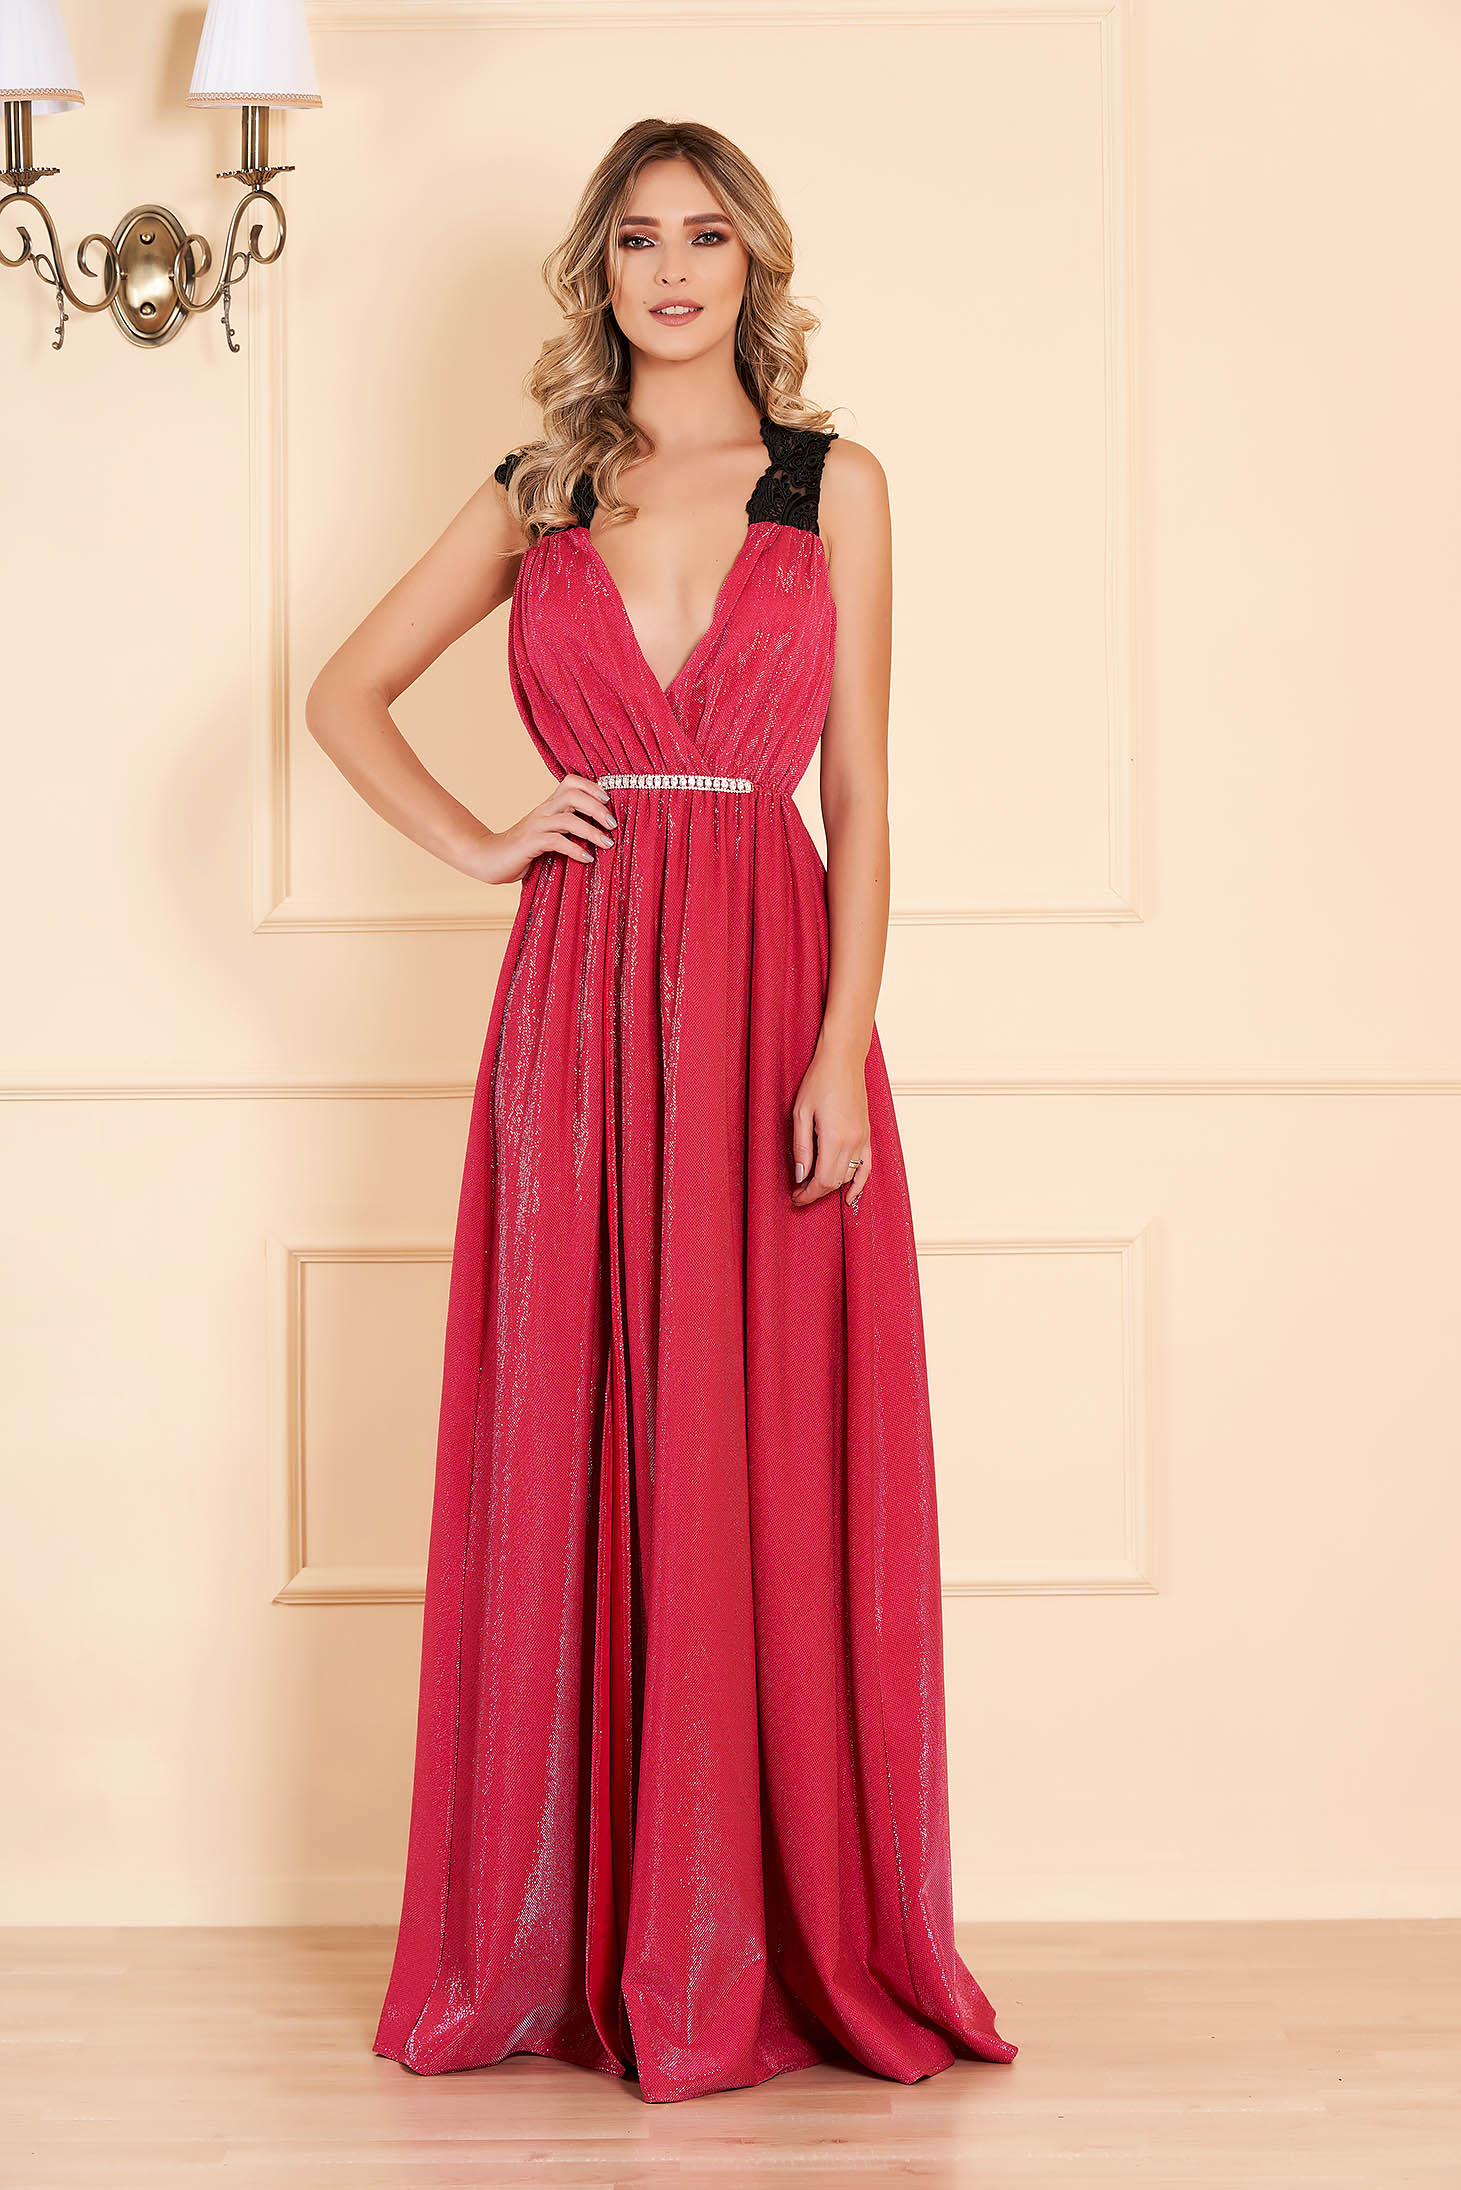 Dress pink evening dresses wrap around with deep cleavage from shiny fabric